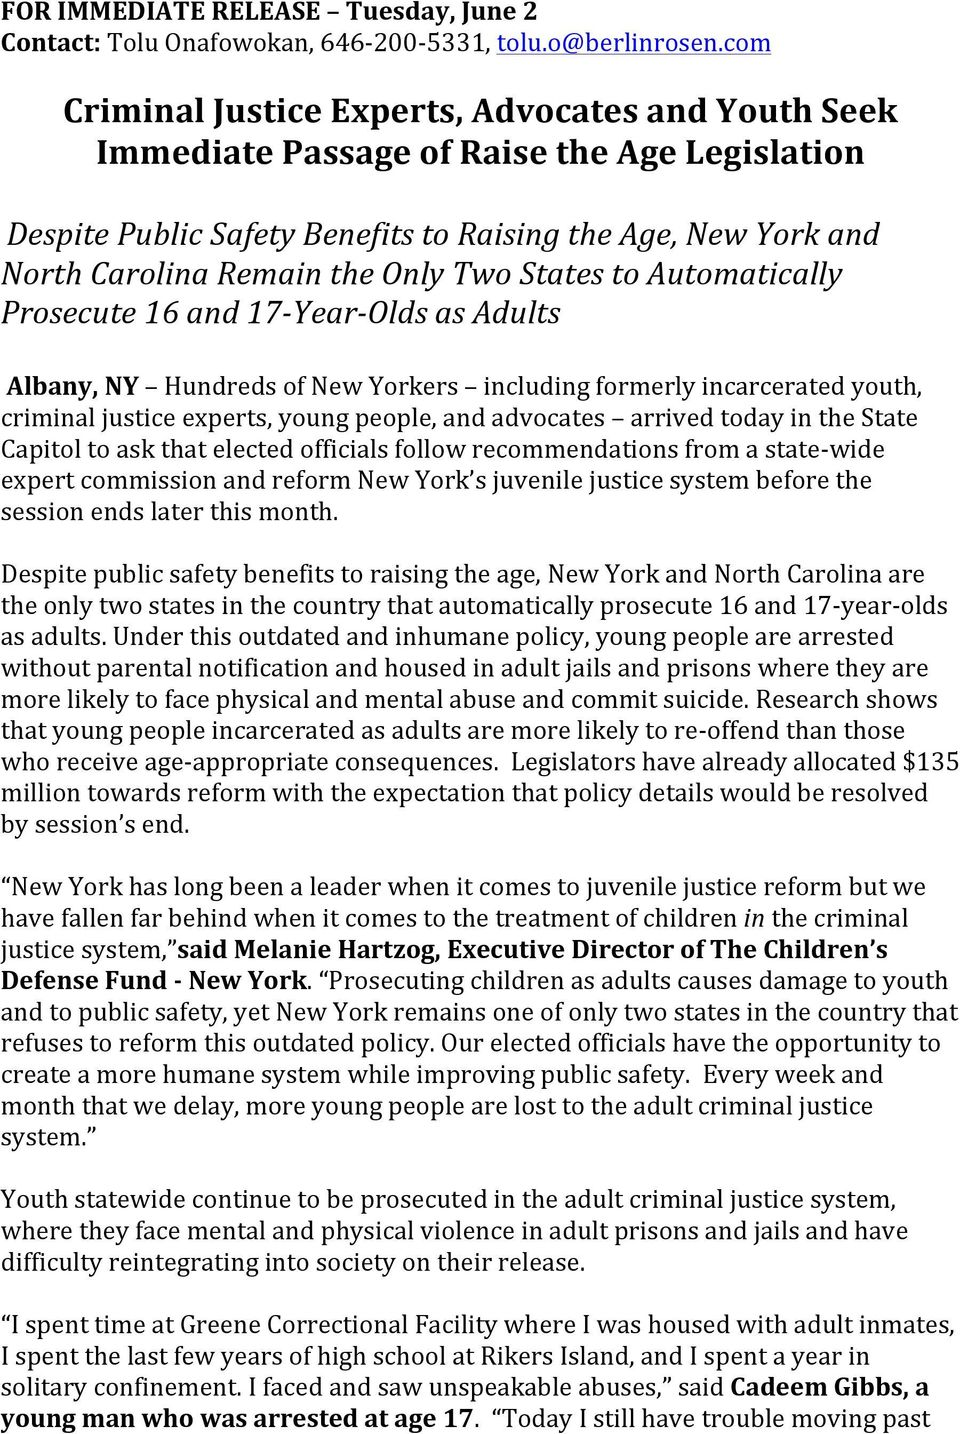 Two States to Automatically Prosecute 16 and 17YearOlds as Adults Albany, NY Hundreds of New Yorkers including formerly incarcerated youth, criminal justice experts, young people, and advocates